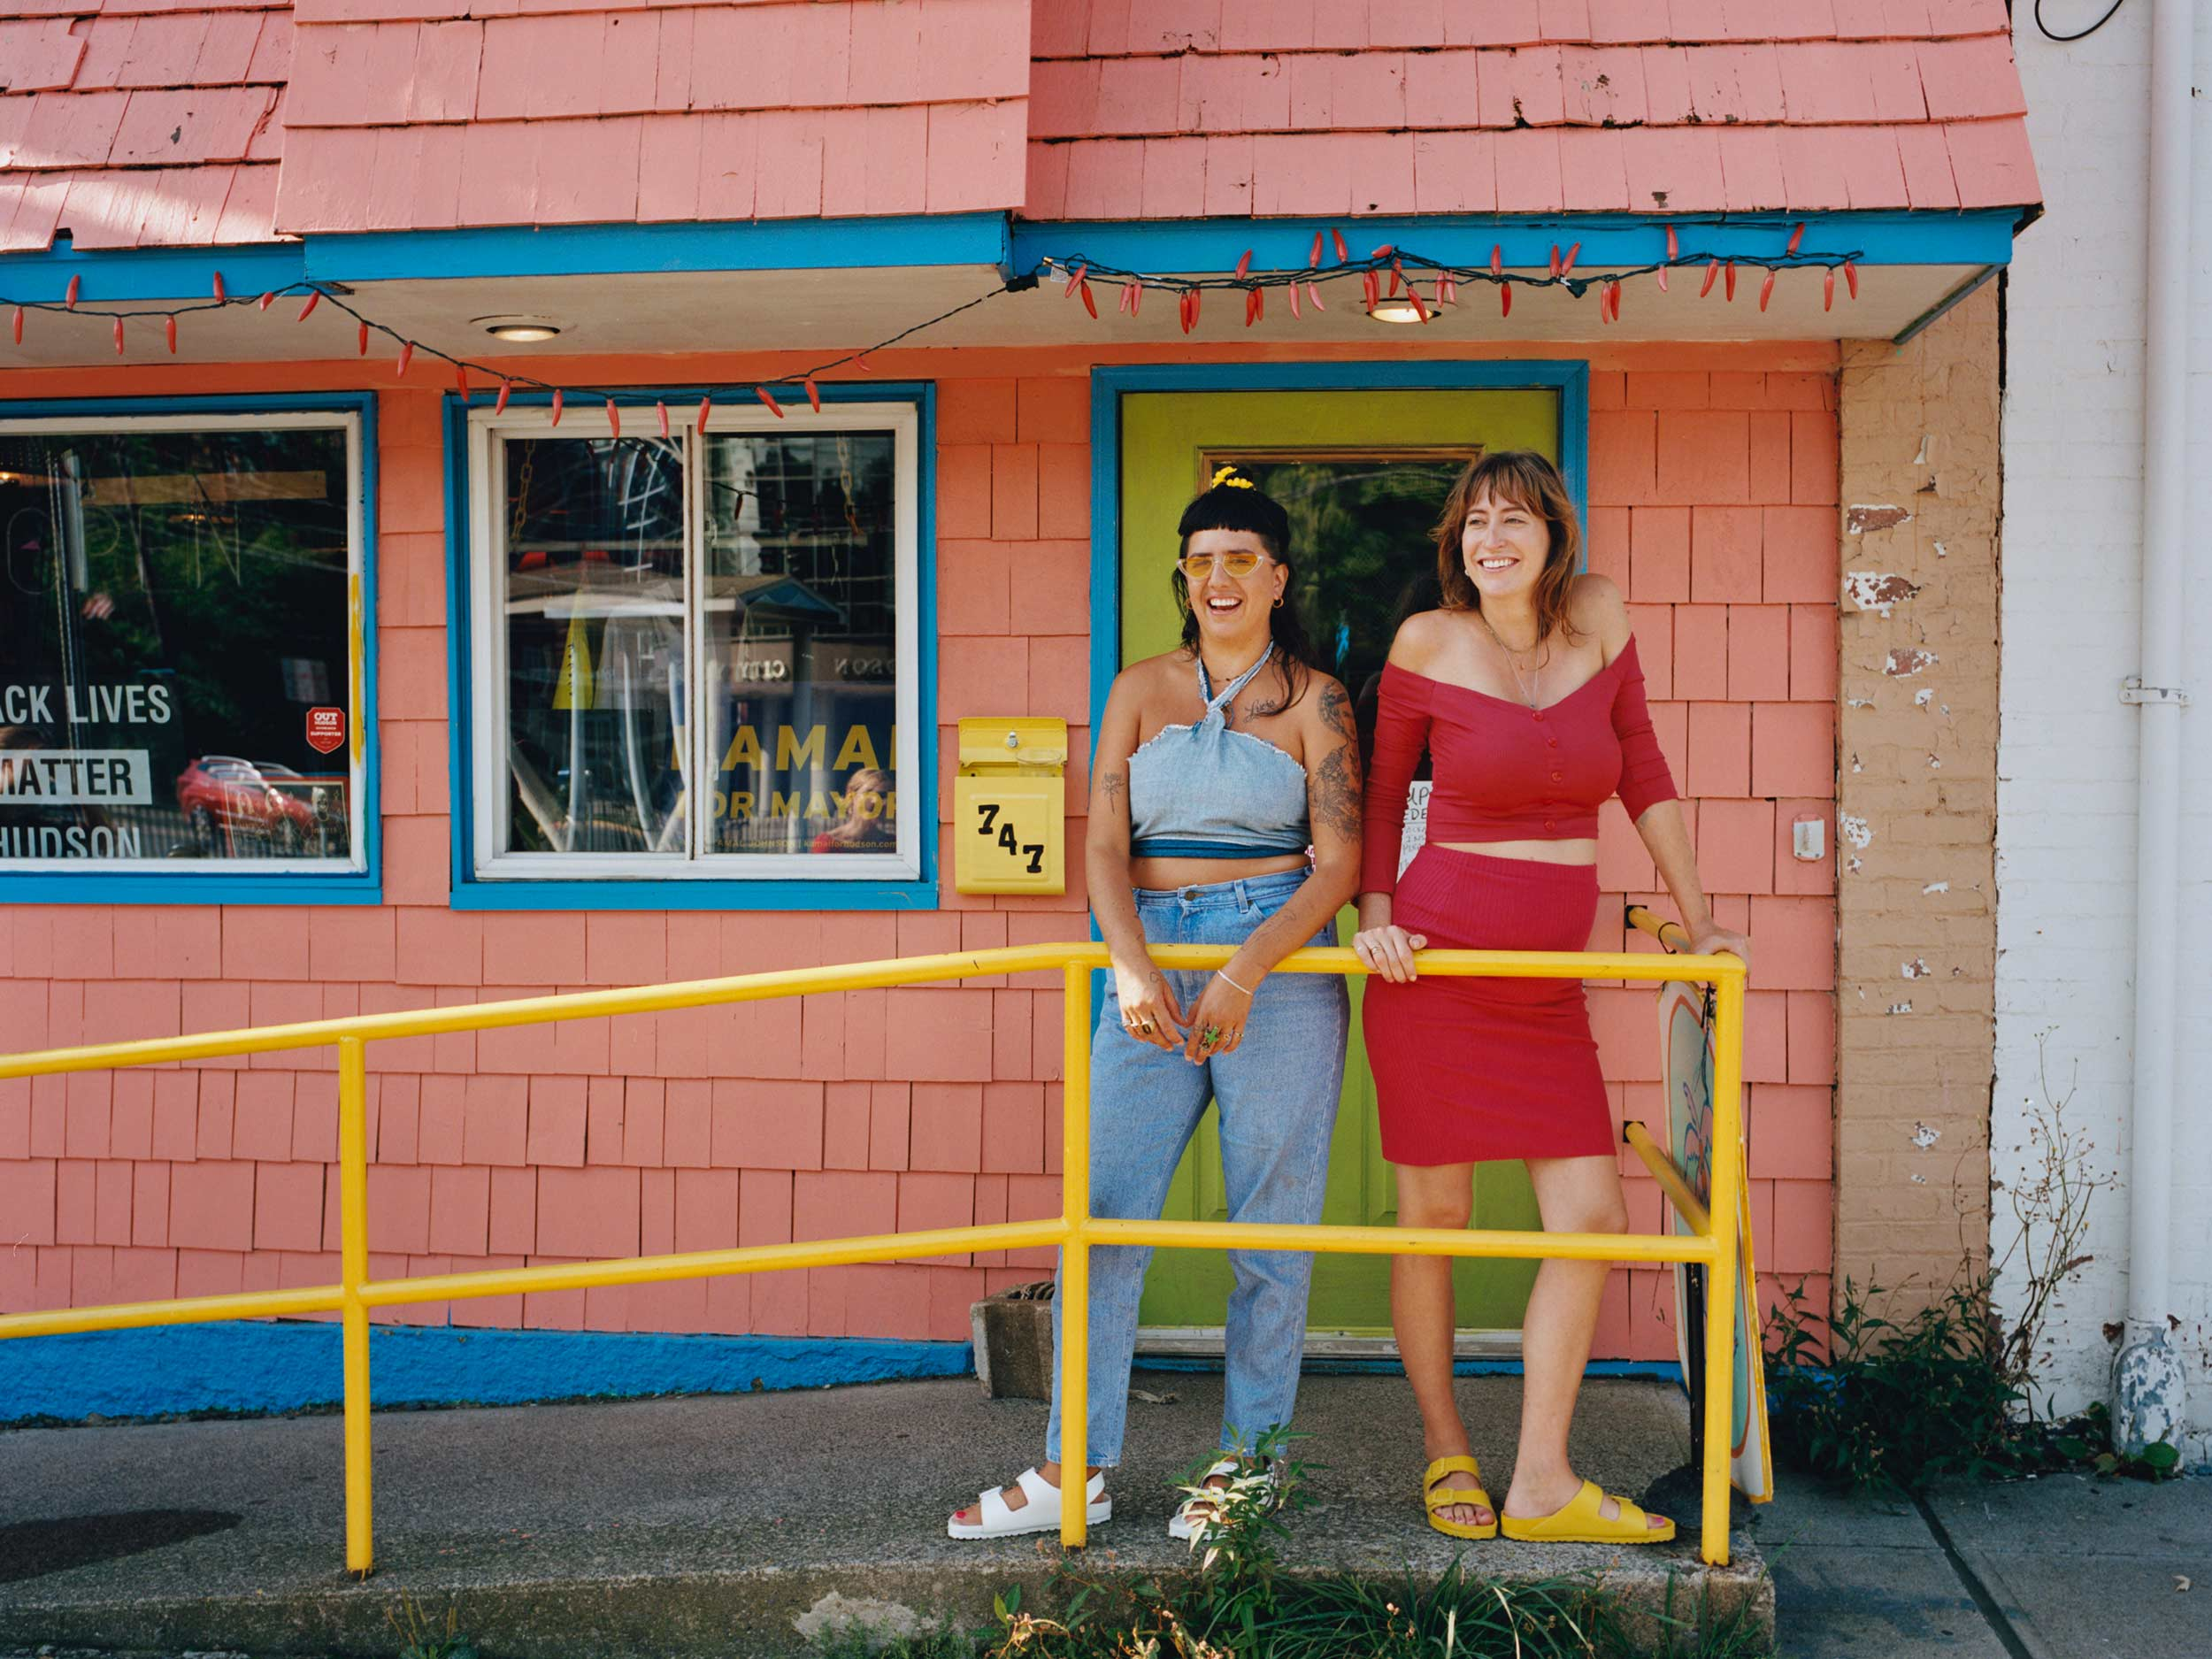 Lil' Deb's Oasis brings 'the spirit of matriarchy' to Upstate New York